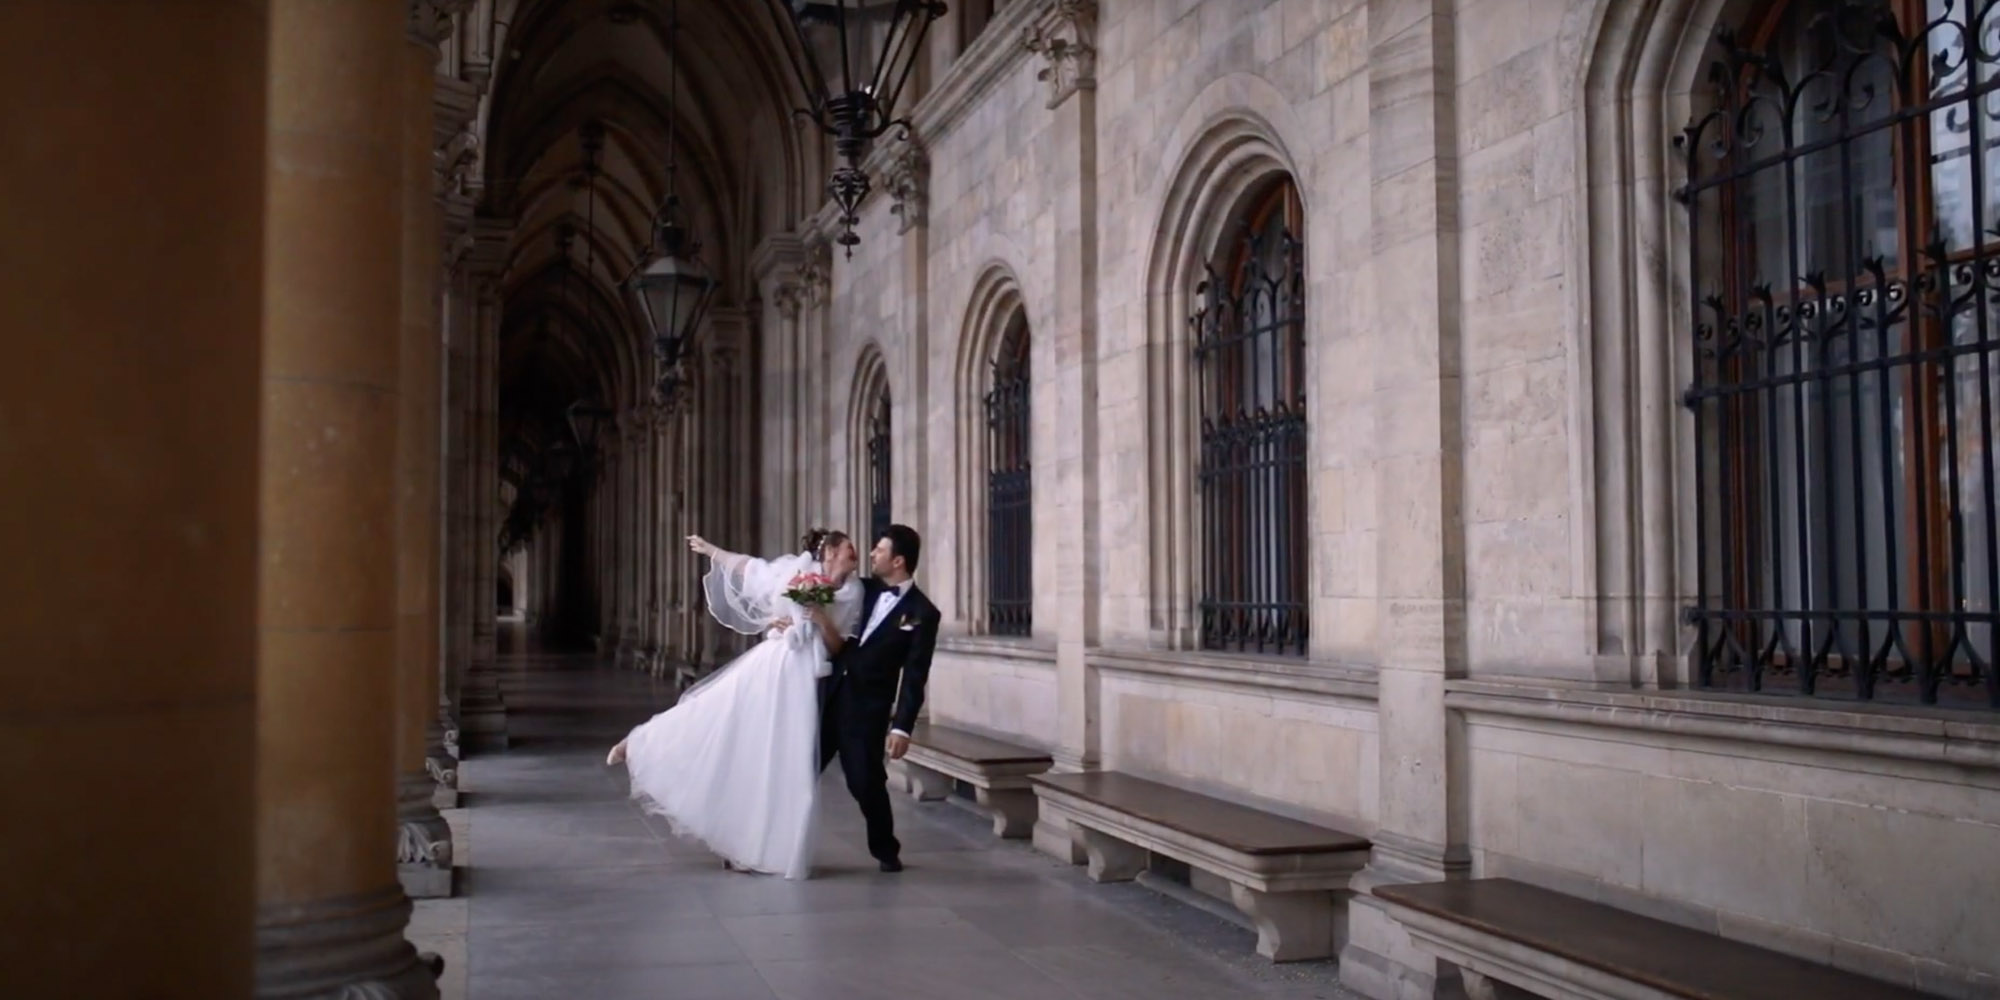 Married couple is dancing in medieval colonnade